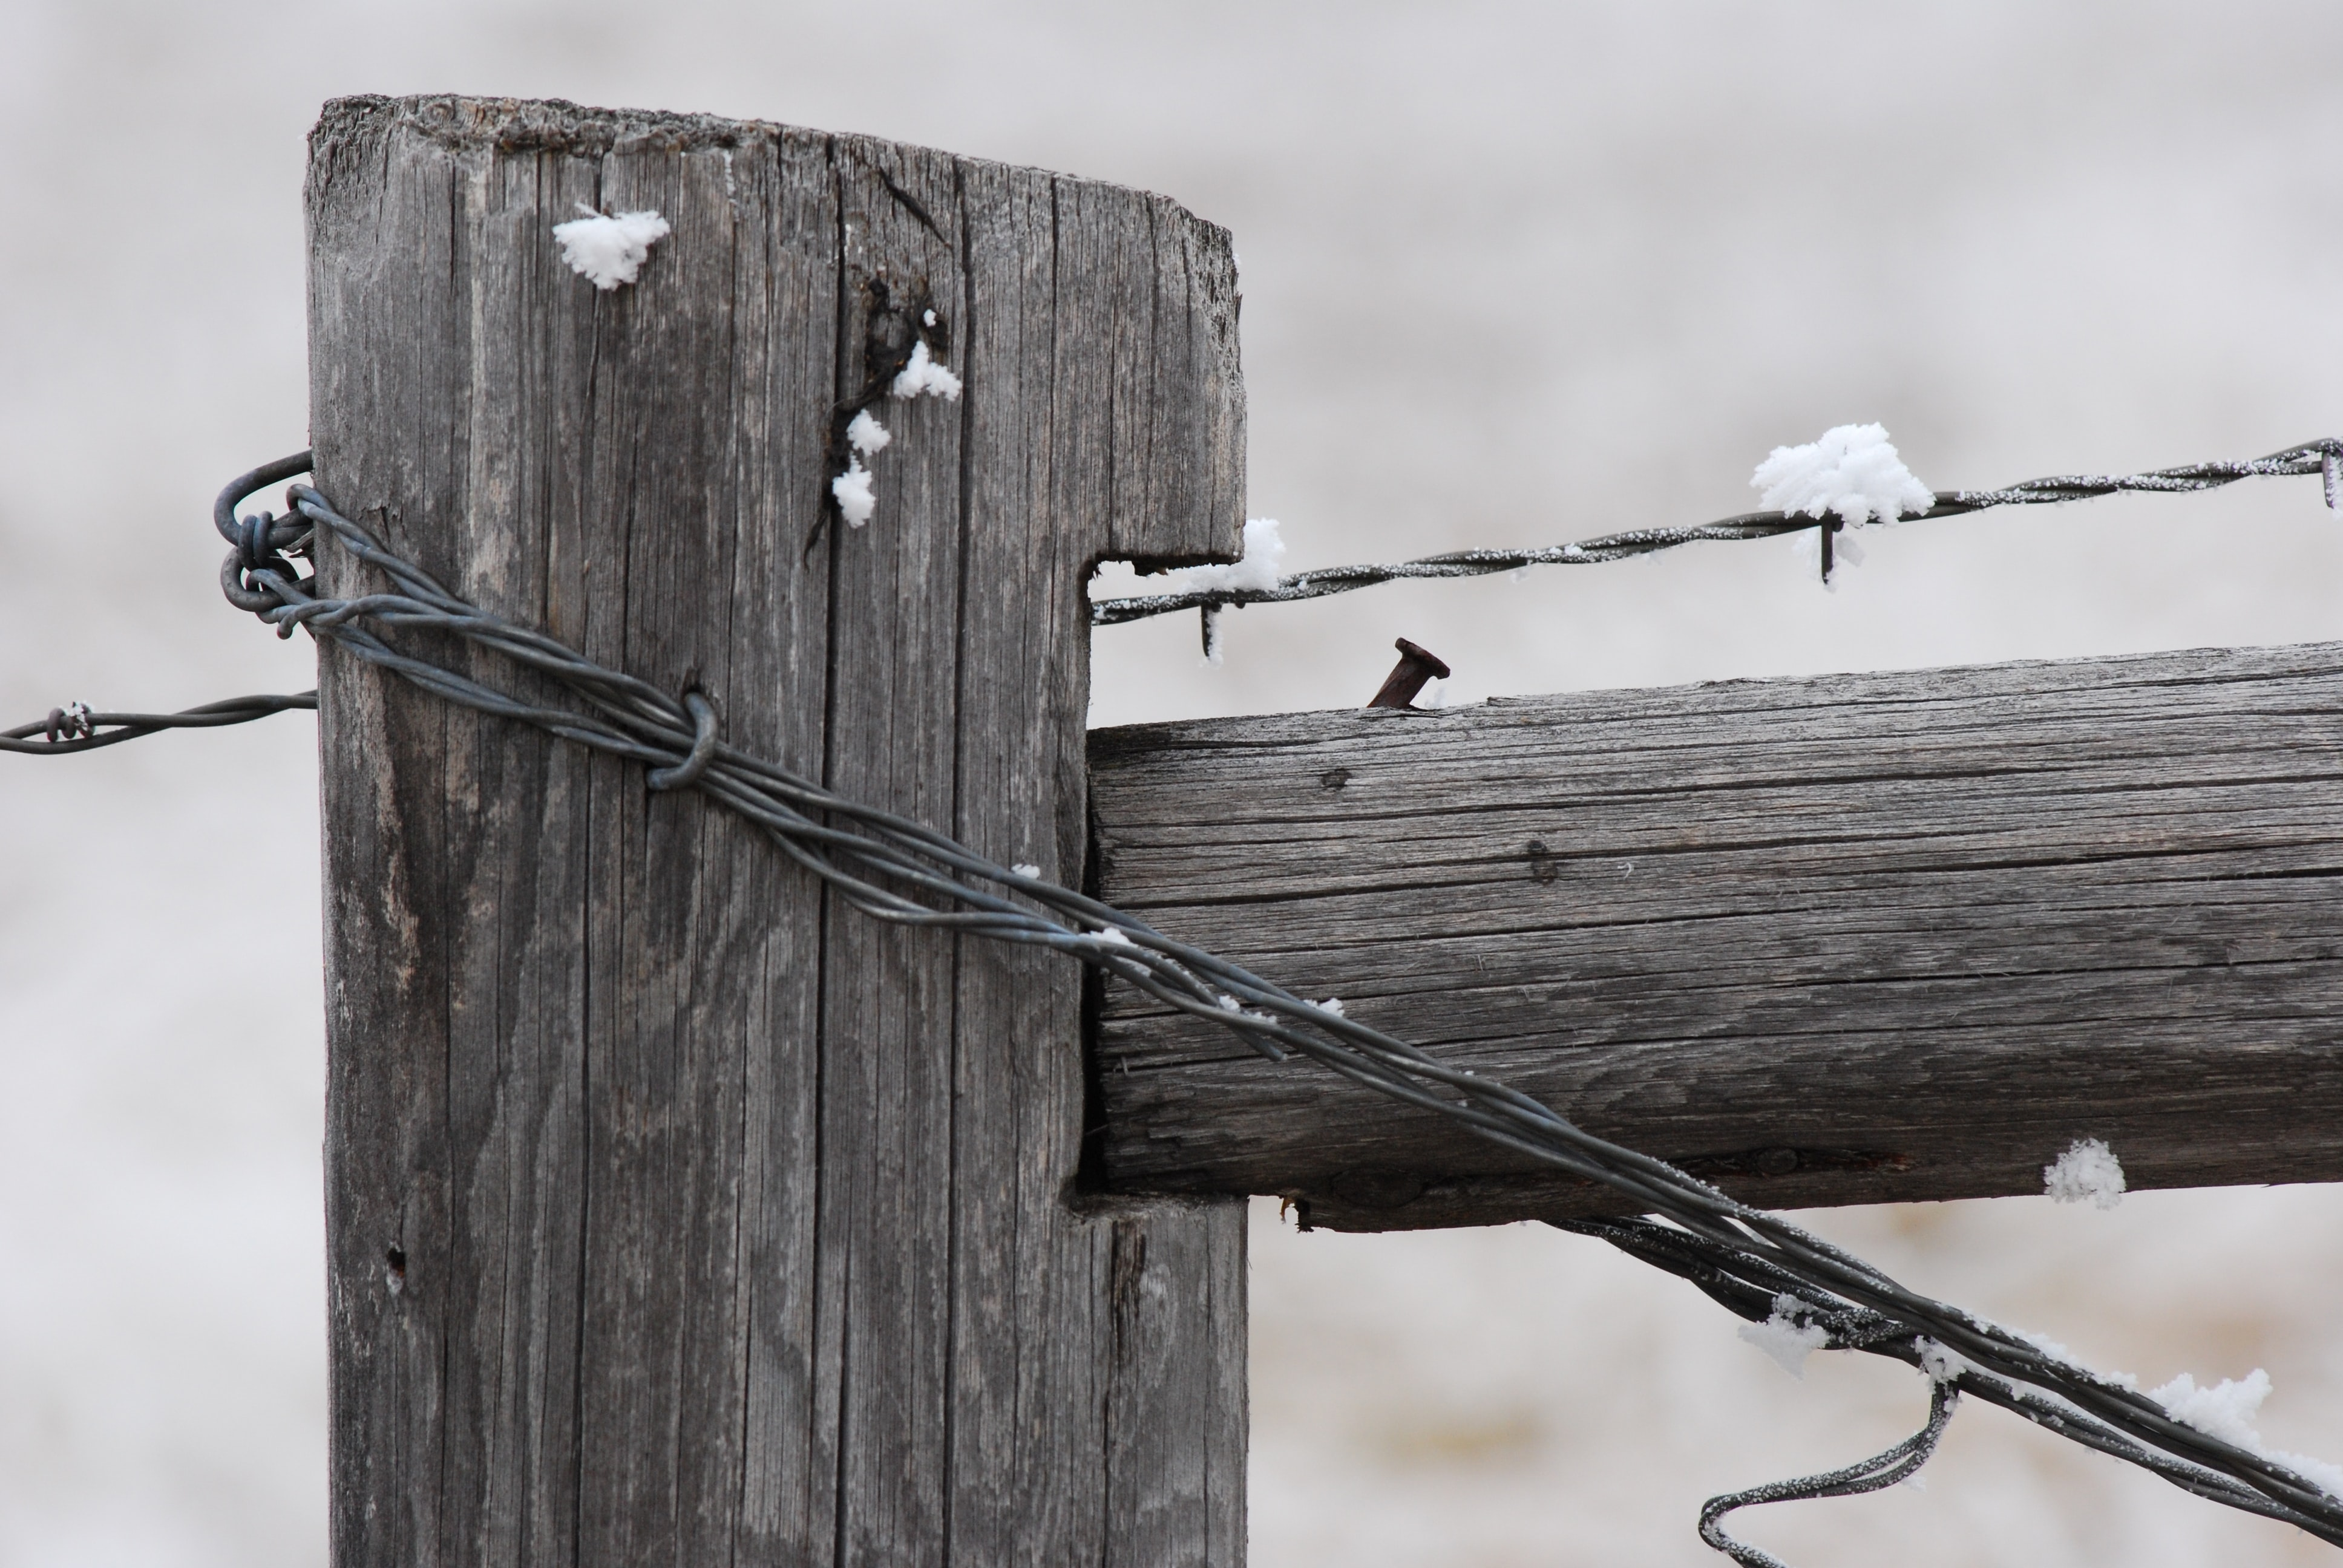 grayscale photo of wooden post with barbed wires